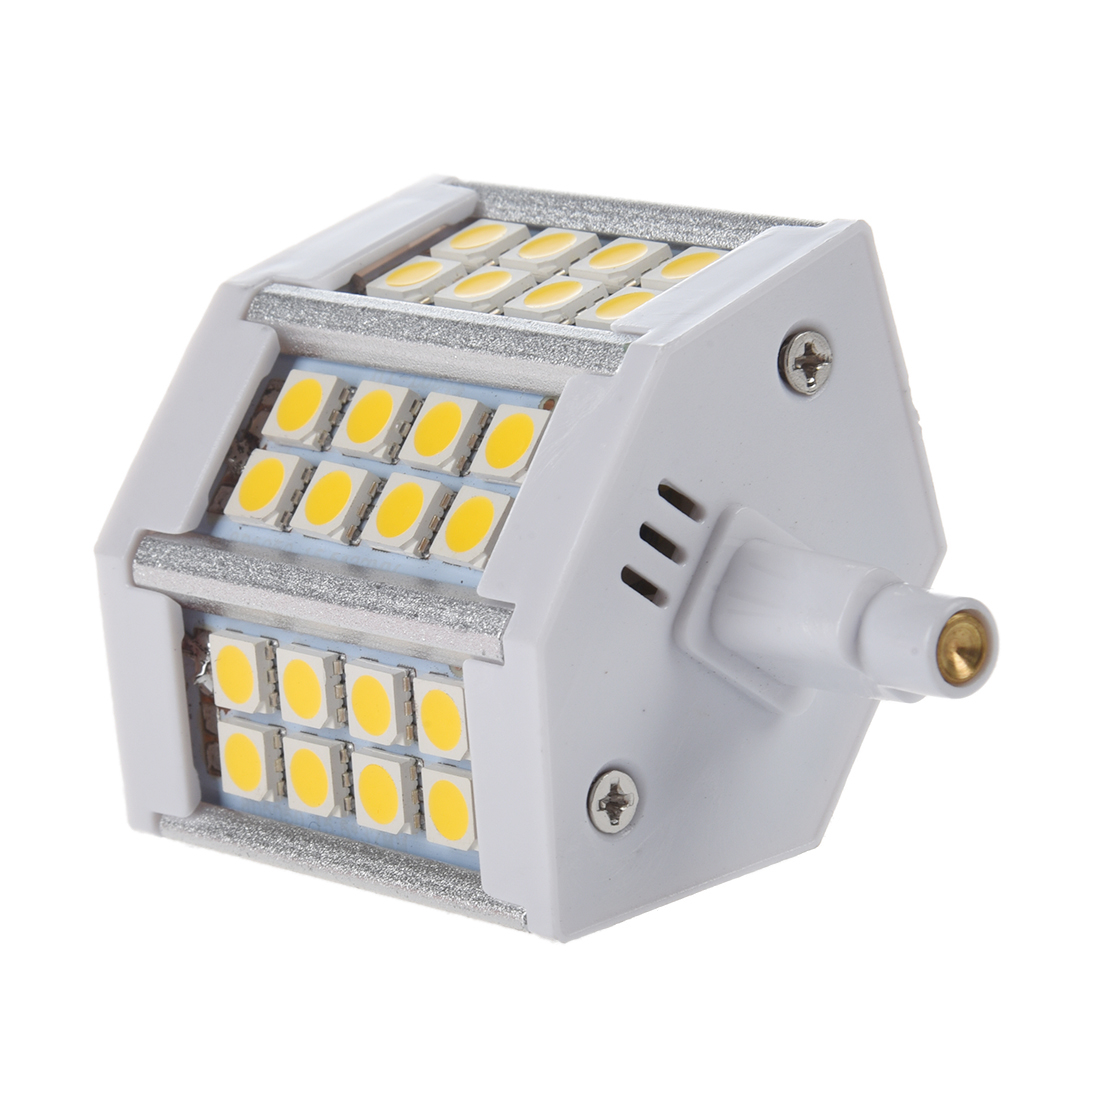 2x R7S/ J78 78mm 5050SMD 5W LED Floodlight